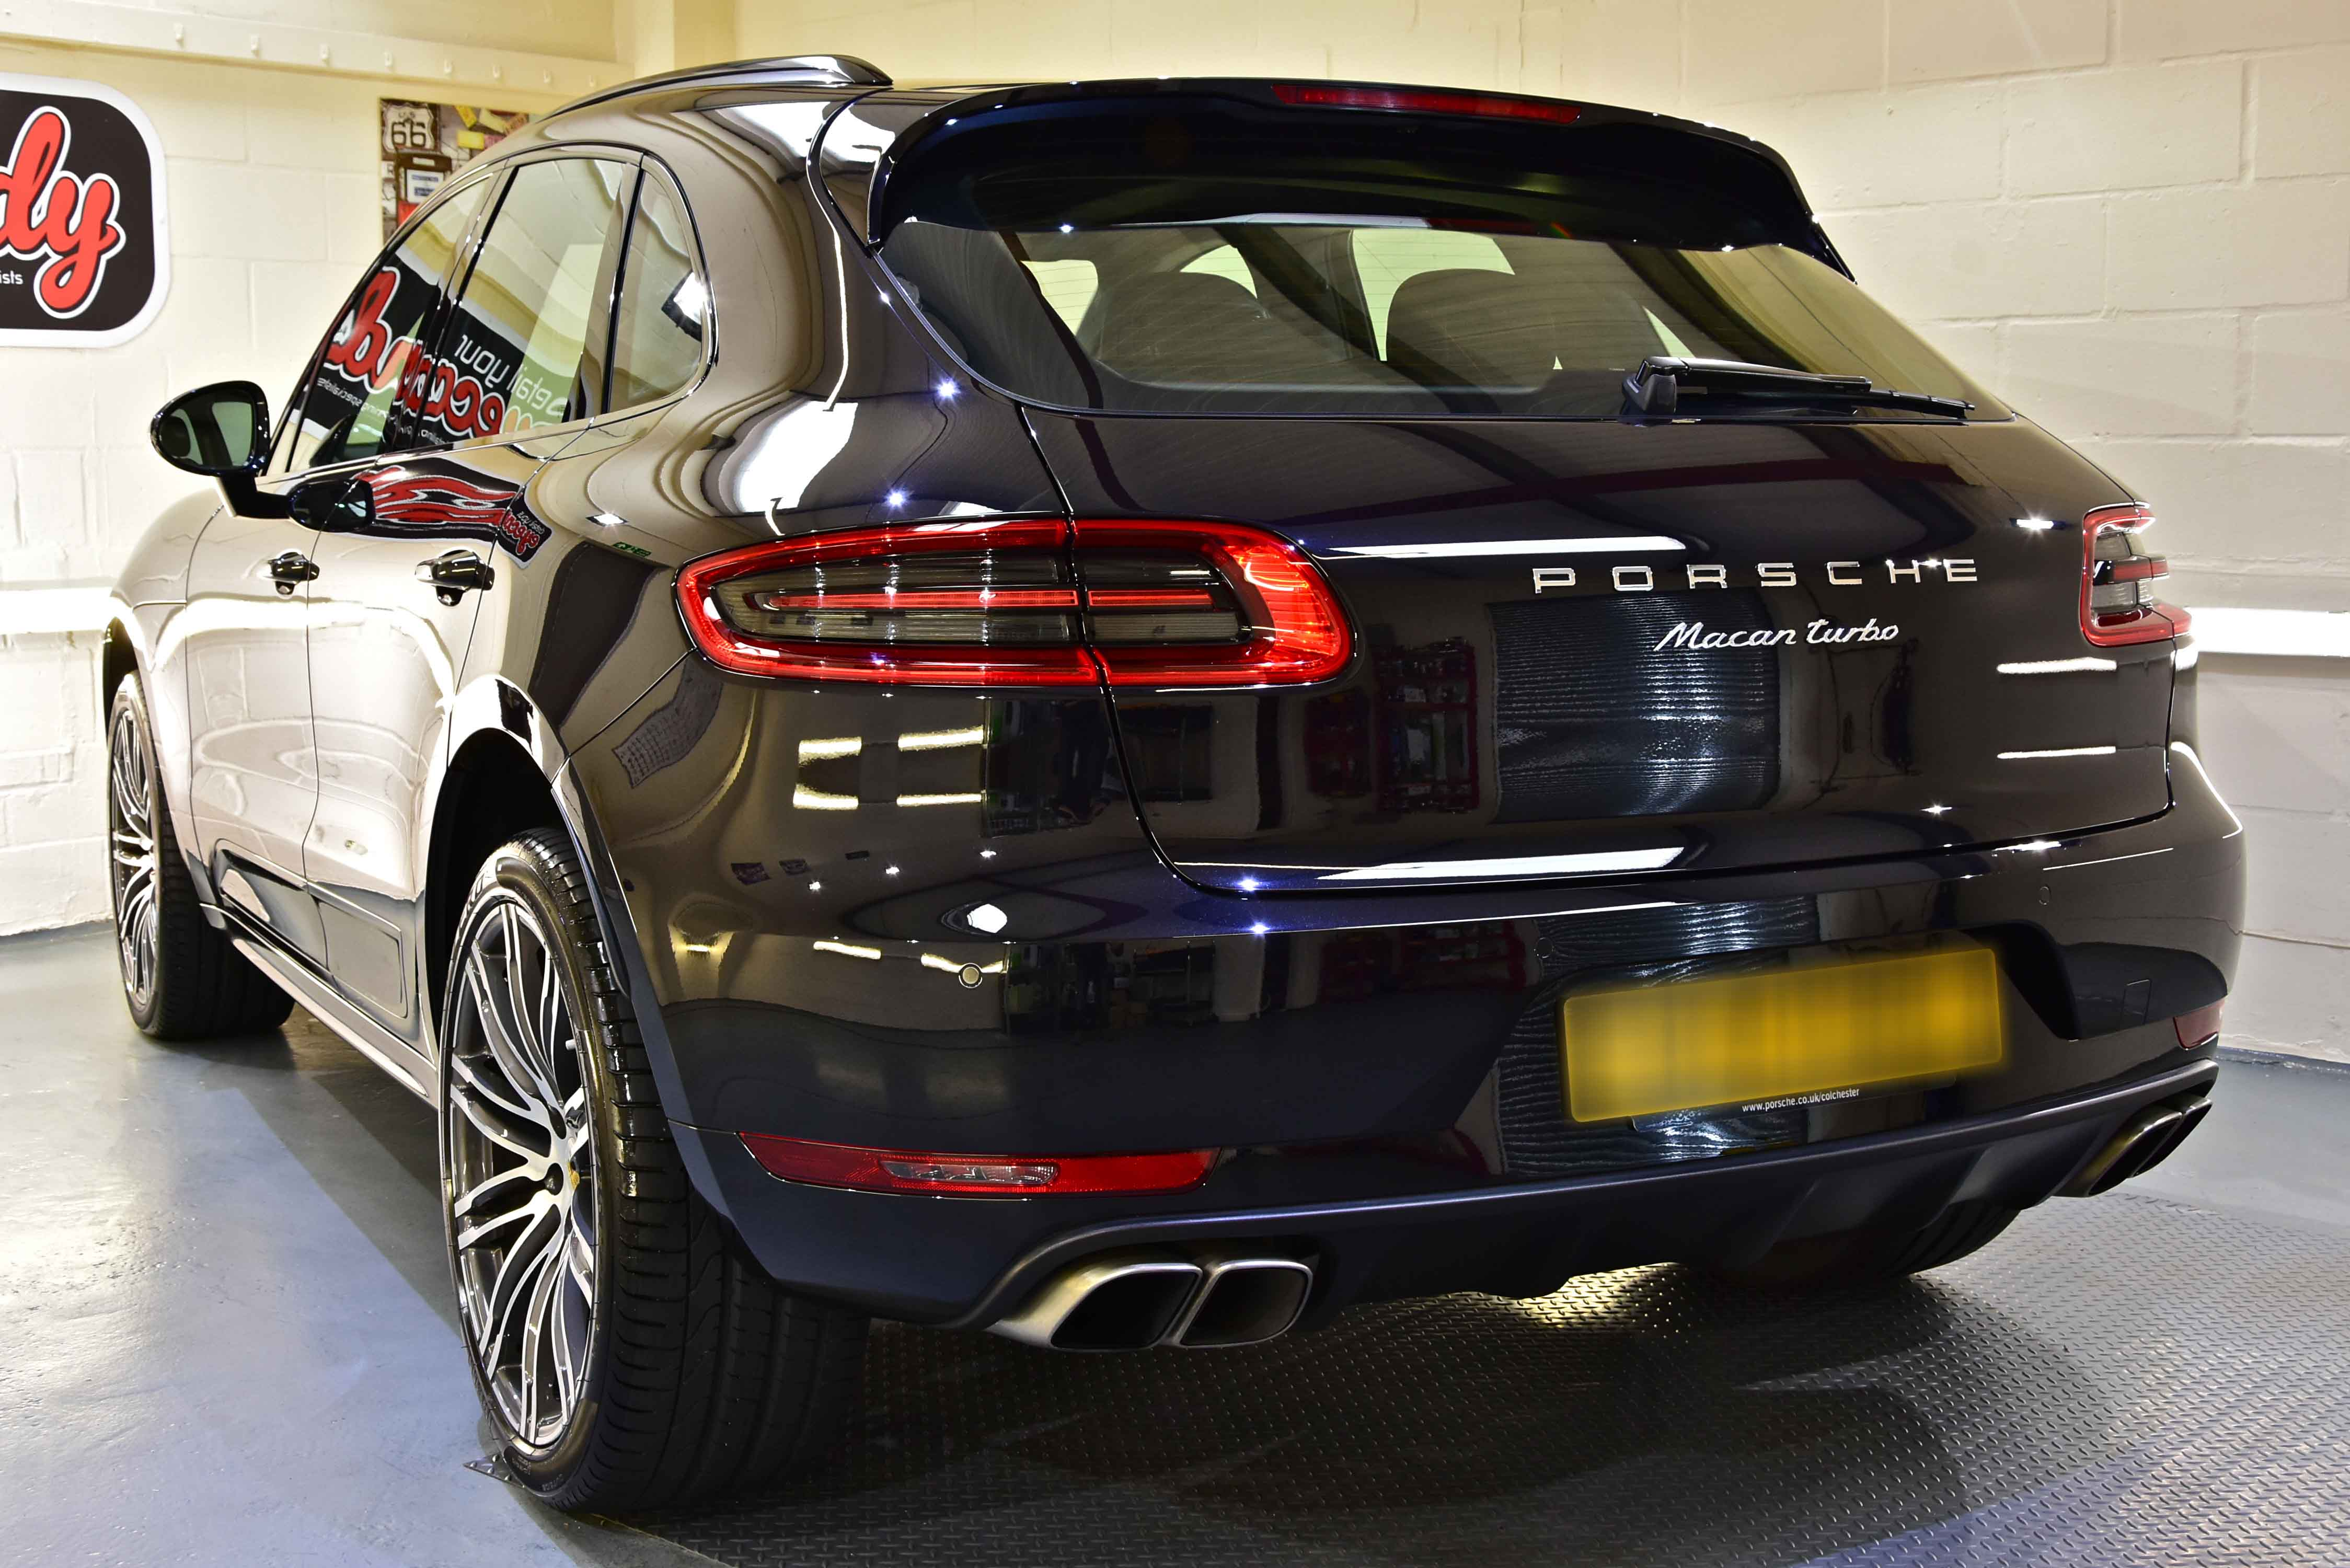 Porsche Macan Light Paint Correction Detail with Gtechniq Crystal Serum Ultra and EXOv4